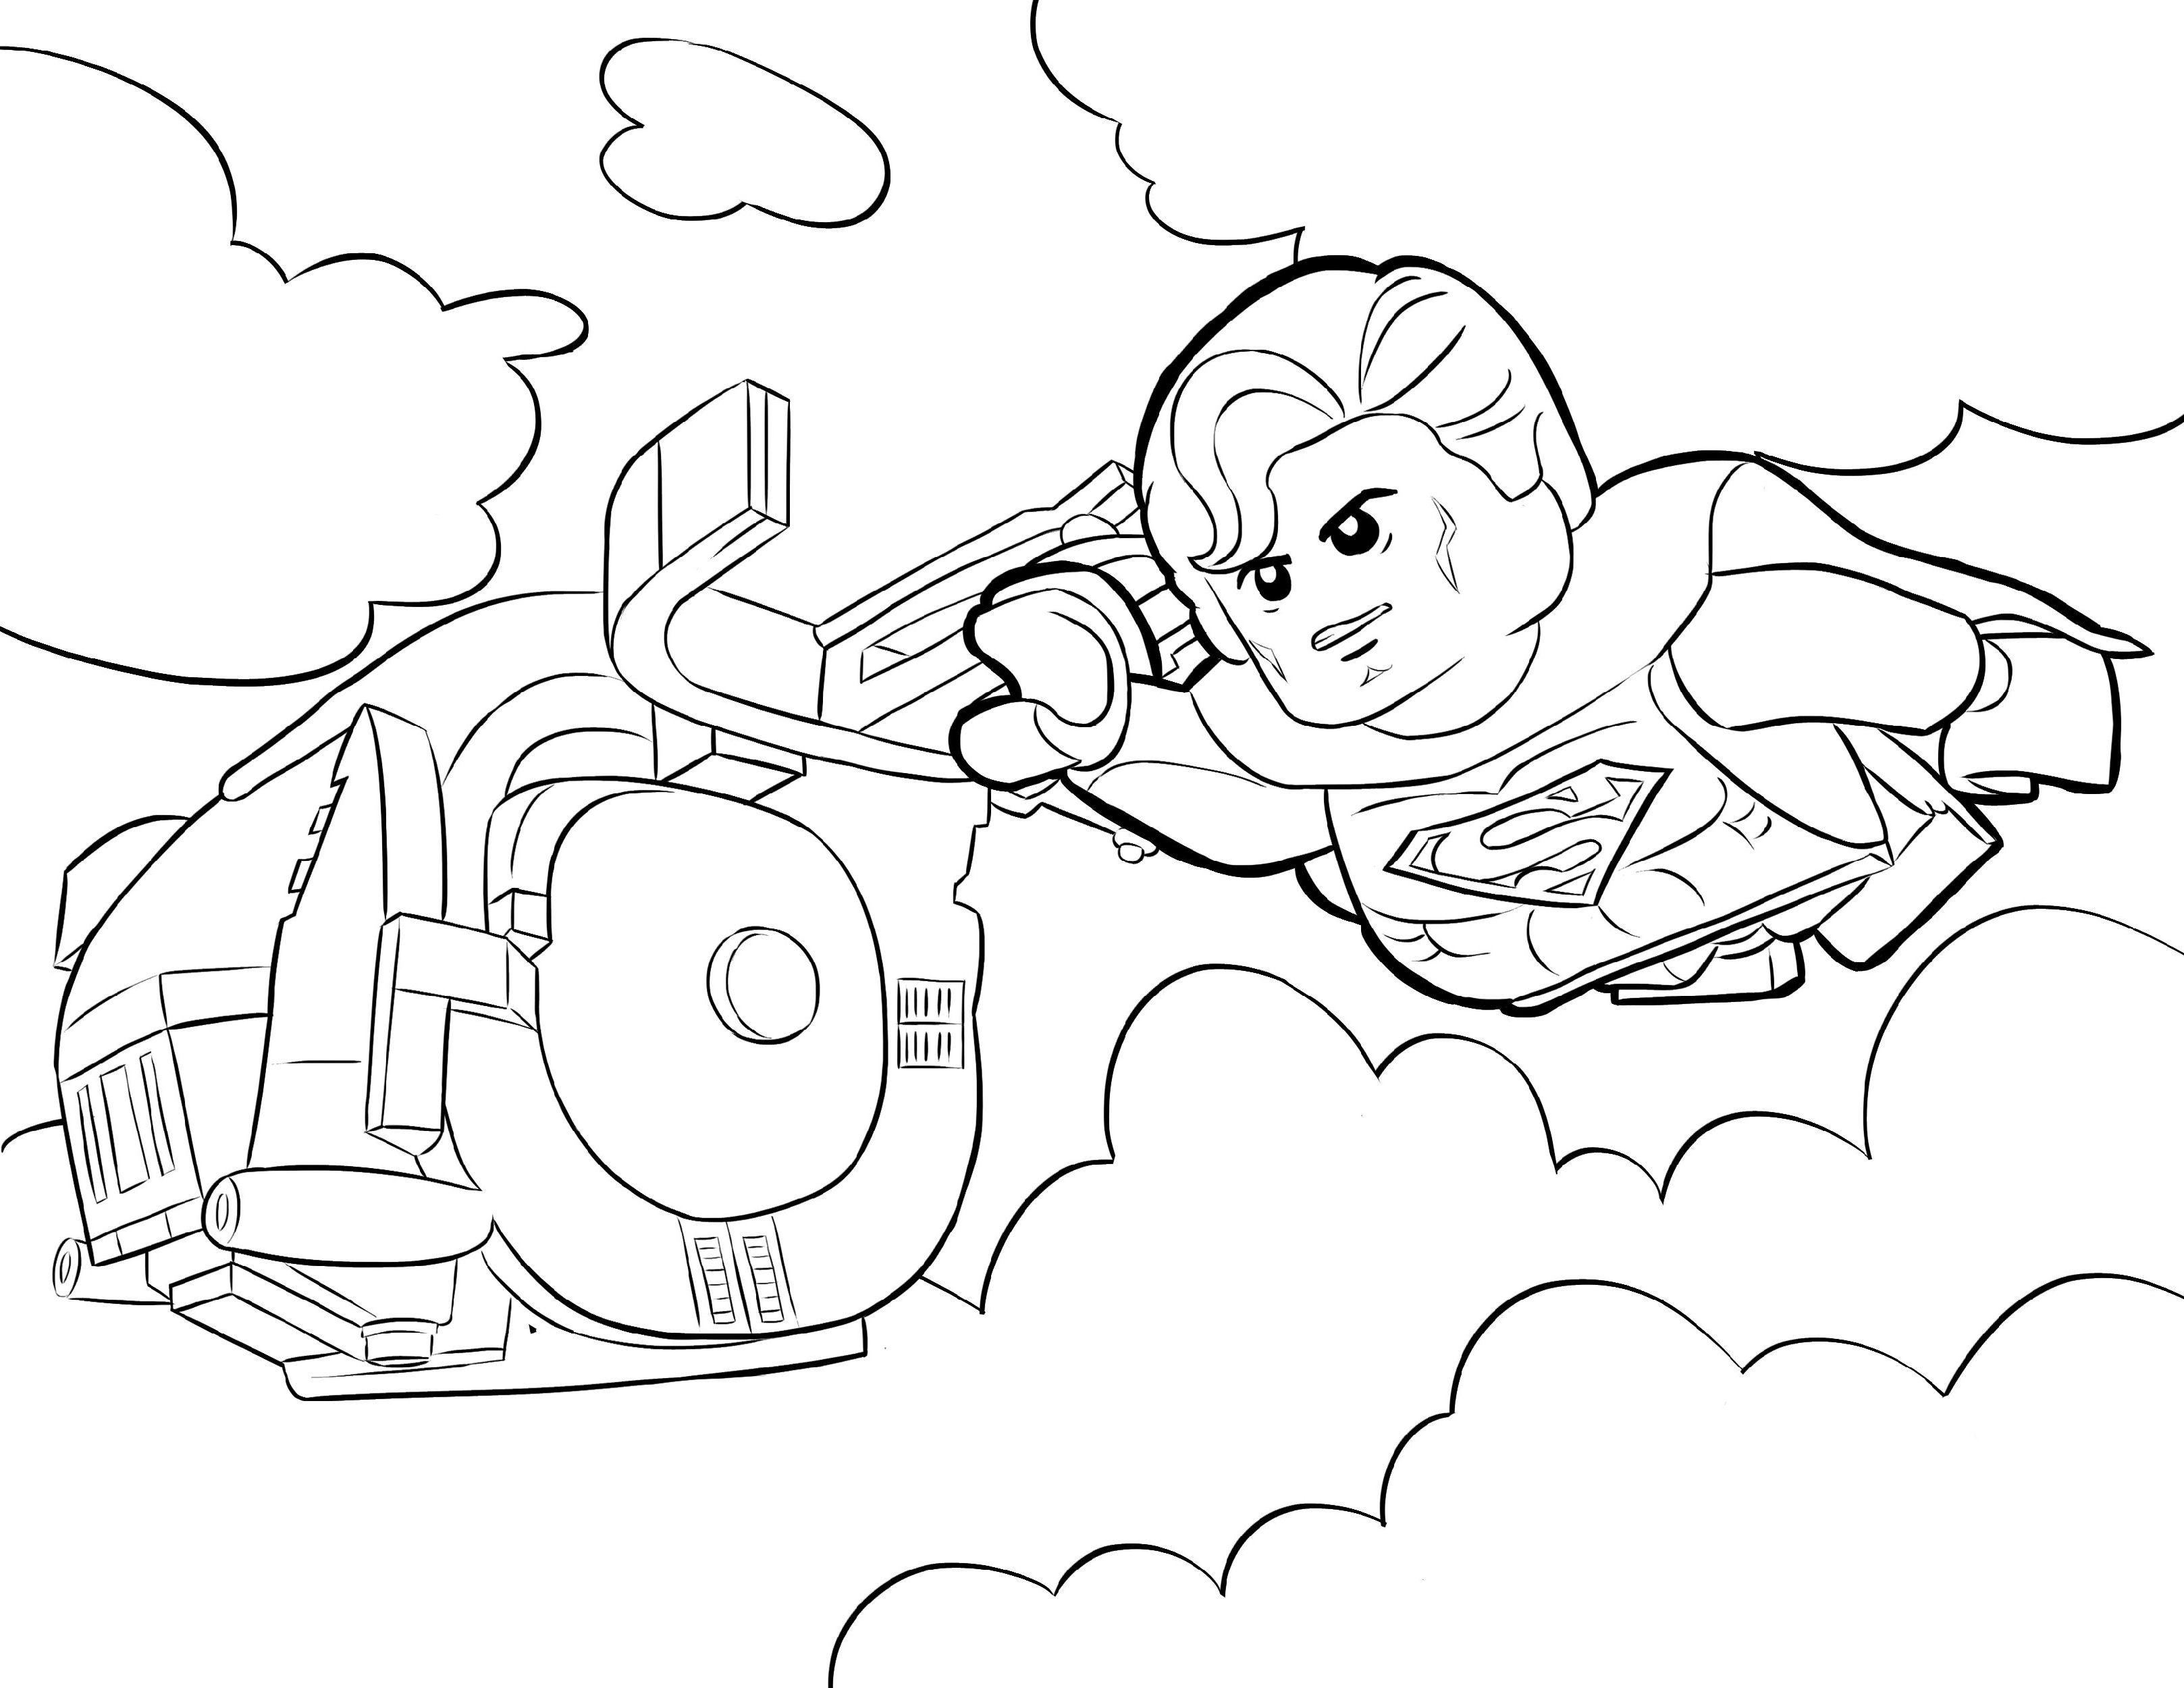 Lego Superman Coloring Pages For Kids Educative Printable Lego Movie Coloring Pages Superman Coloring Pages Coloring Pages